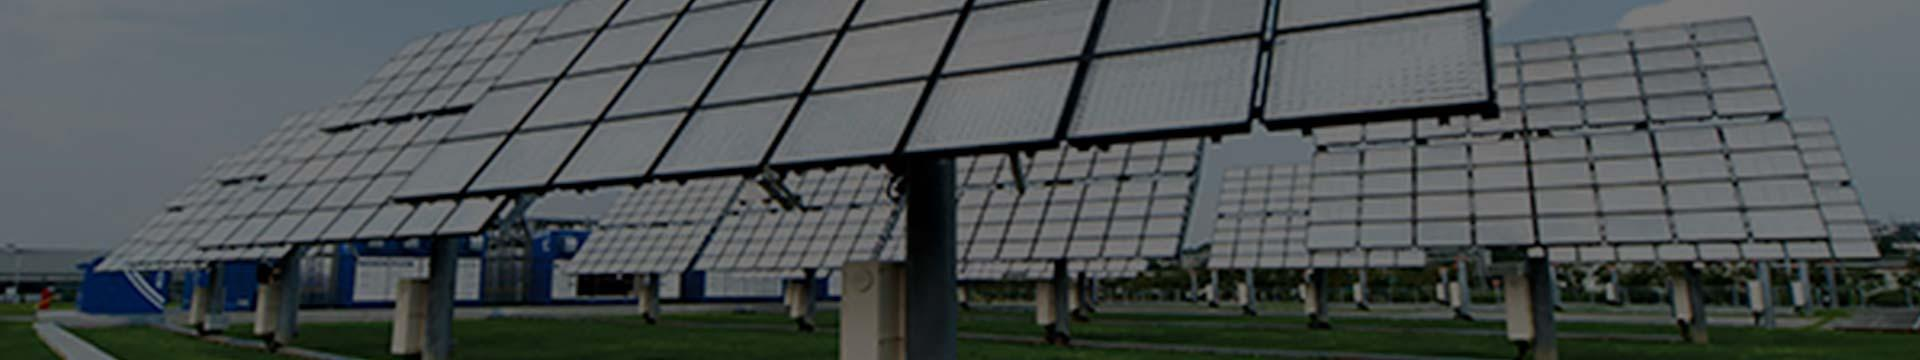 Concentrator Photovoltaic System